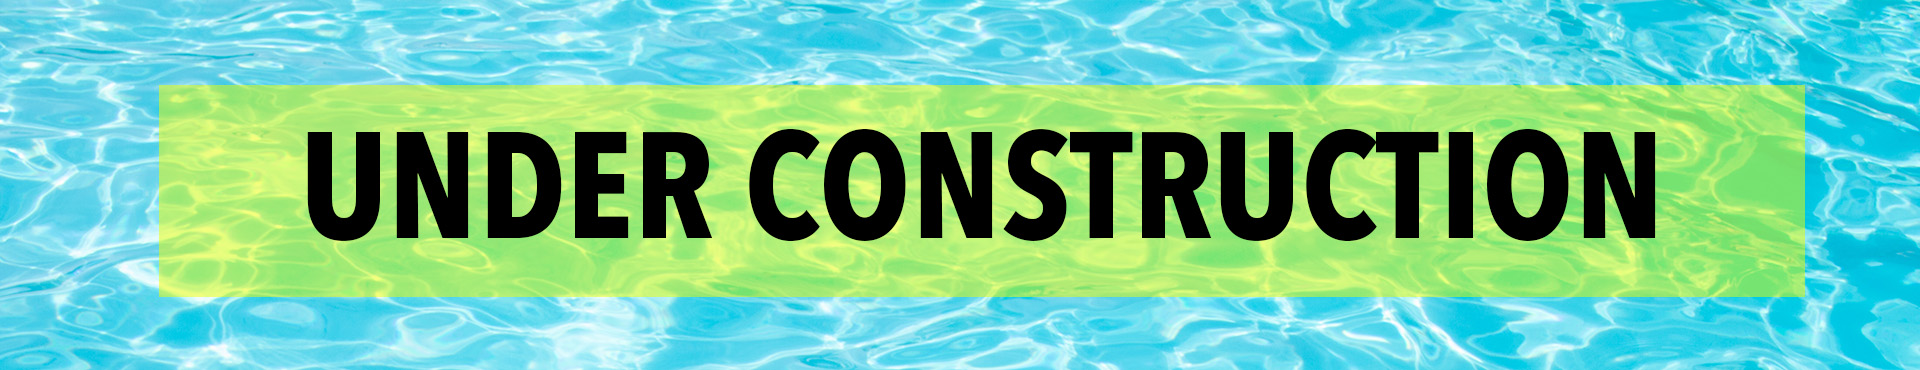 Under construction - pool banner